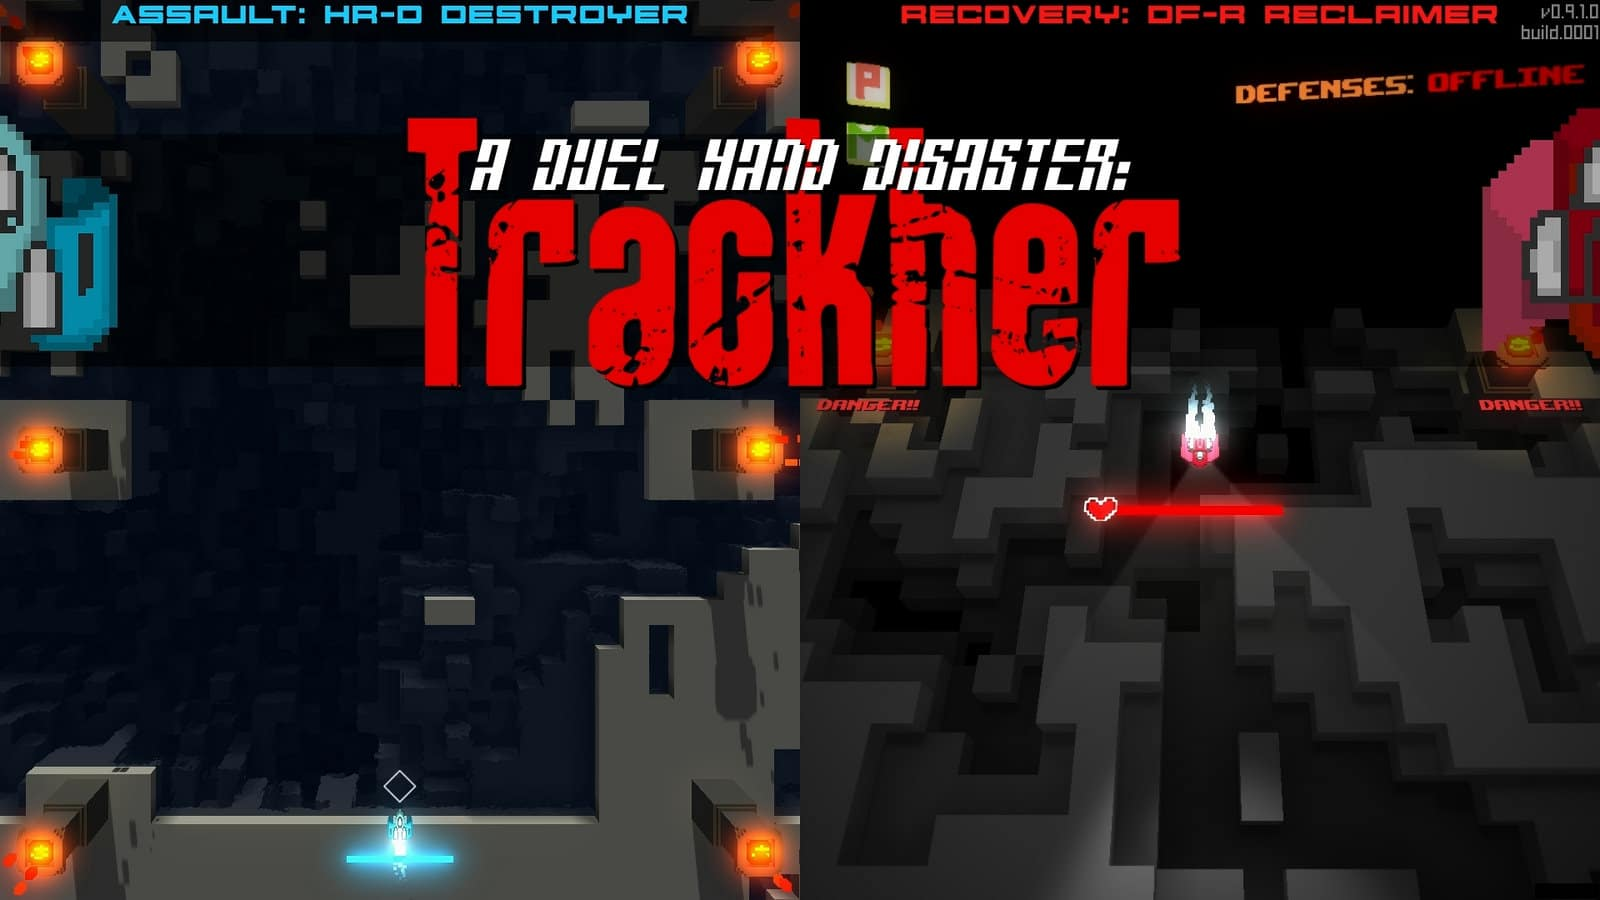 A Duel Hand Disaster: Trackher footage